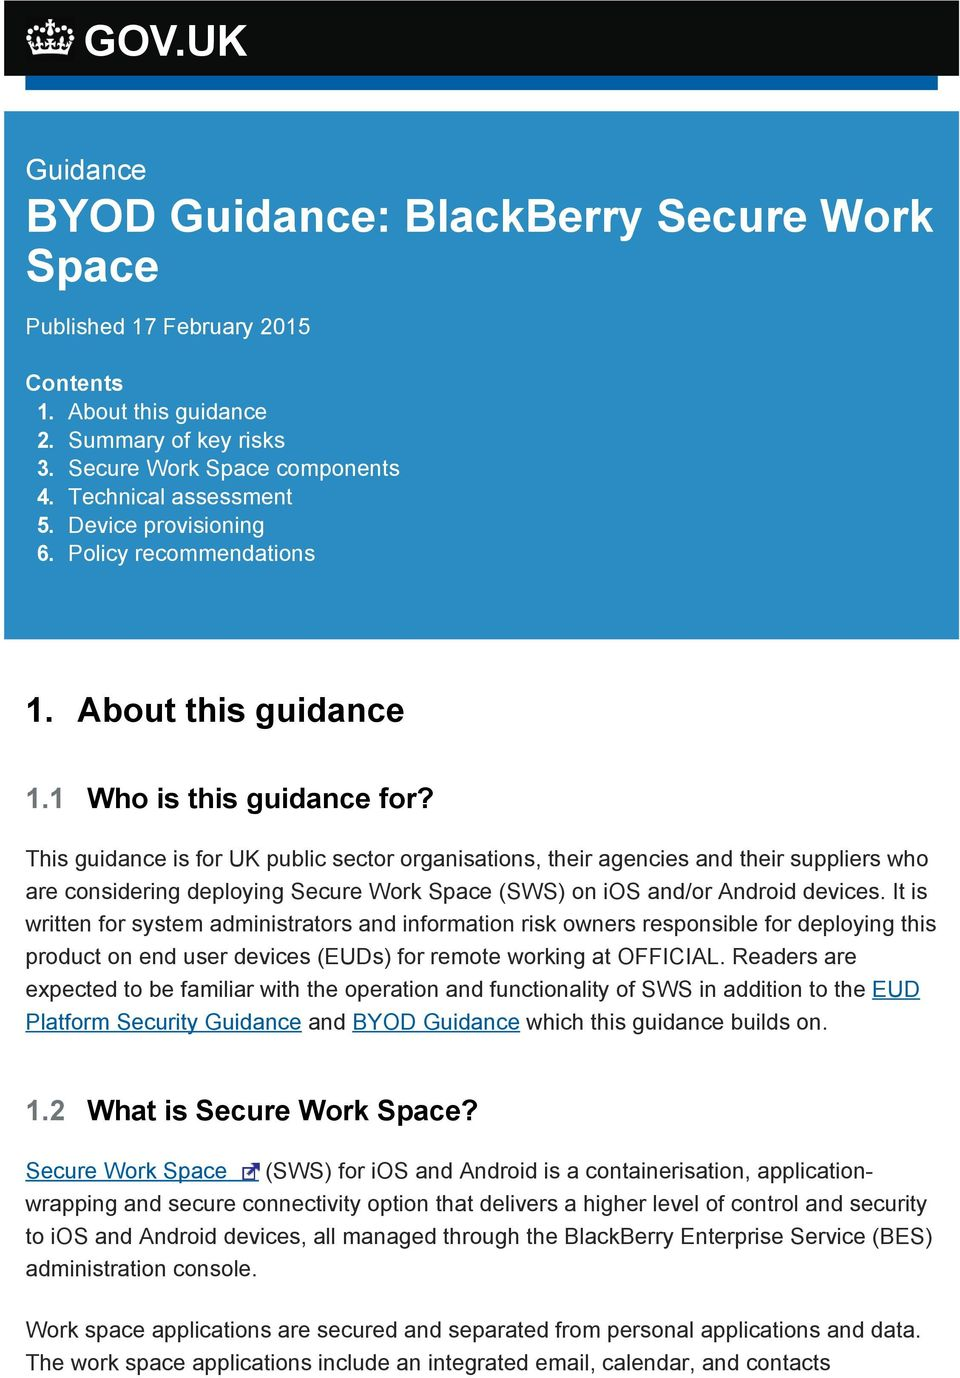 This guidance is for UK public sector organisations, their agencies and their suppliers who are considering deploying Secure Work Space (SWS) on ios and/or Android devices.